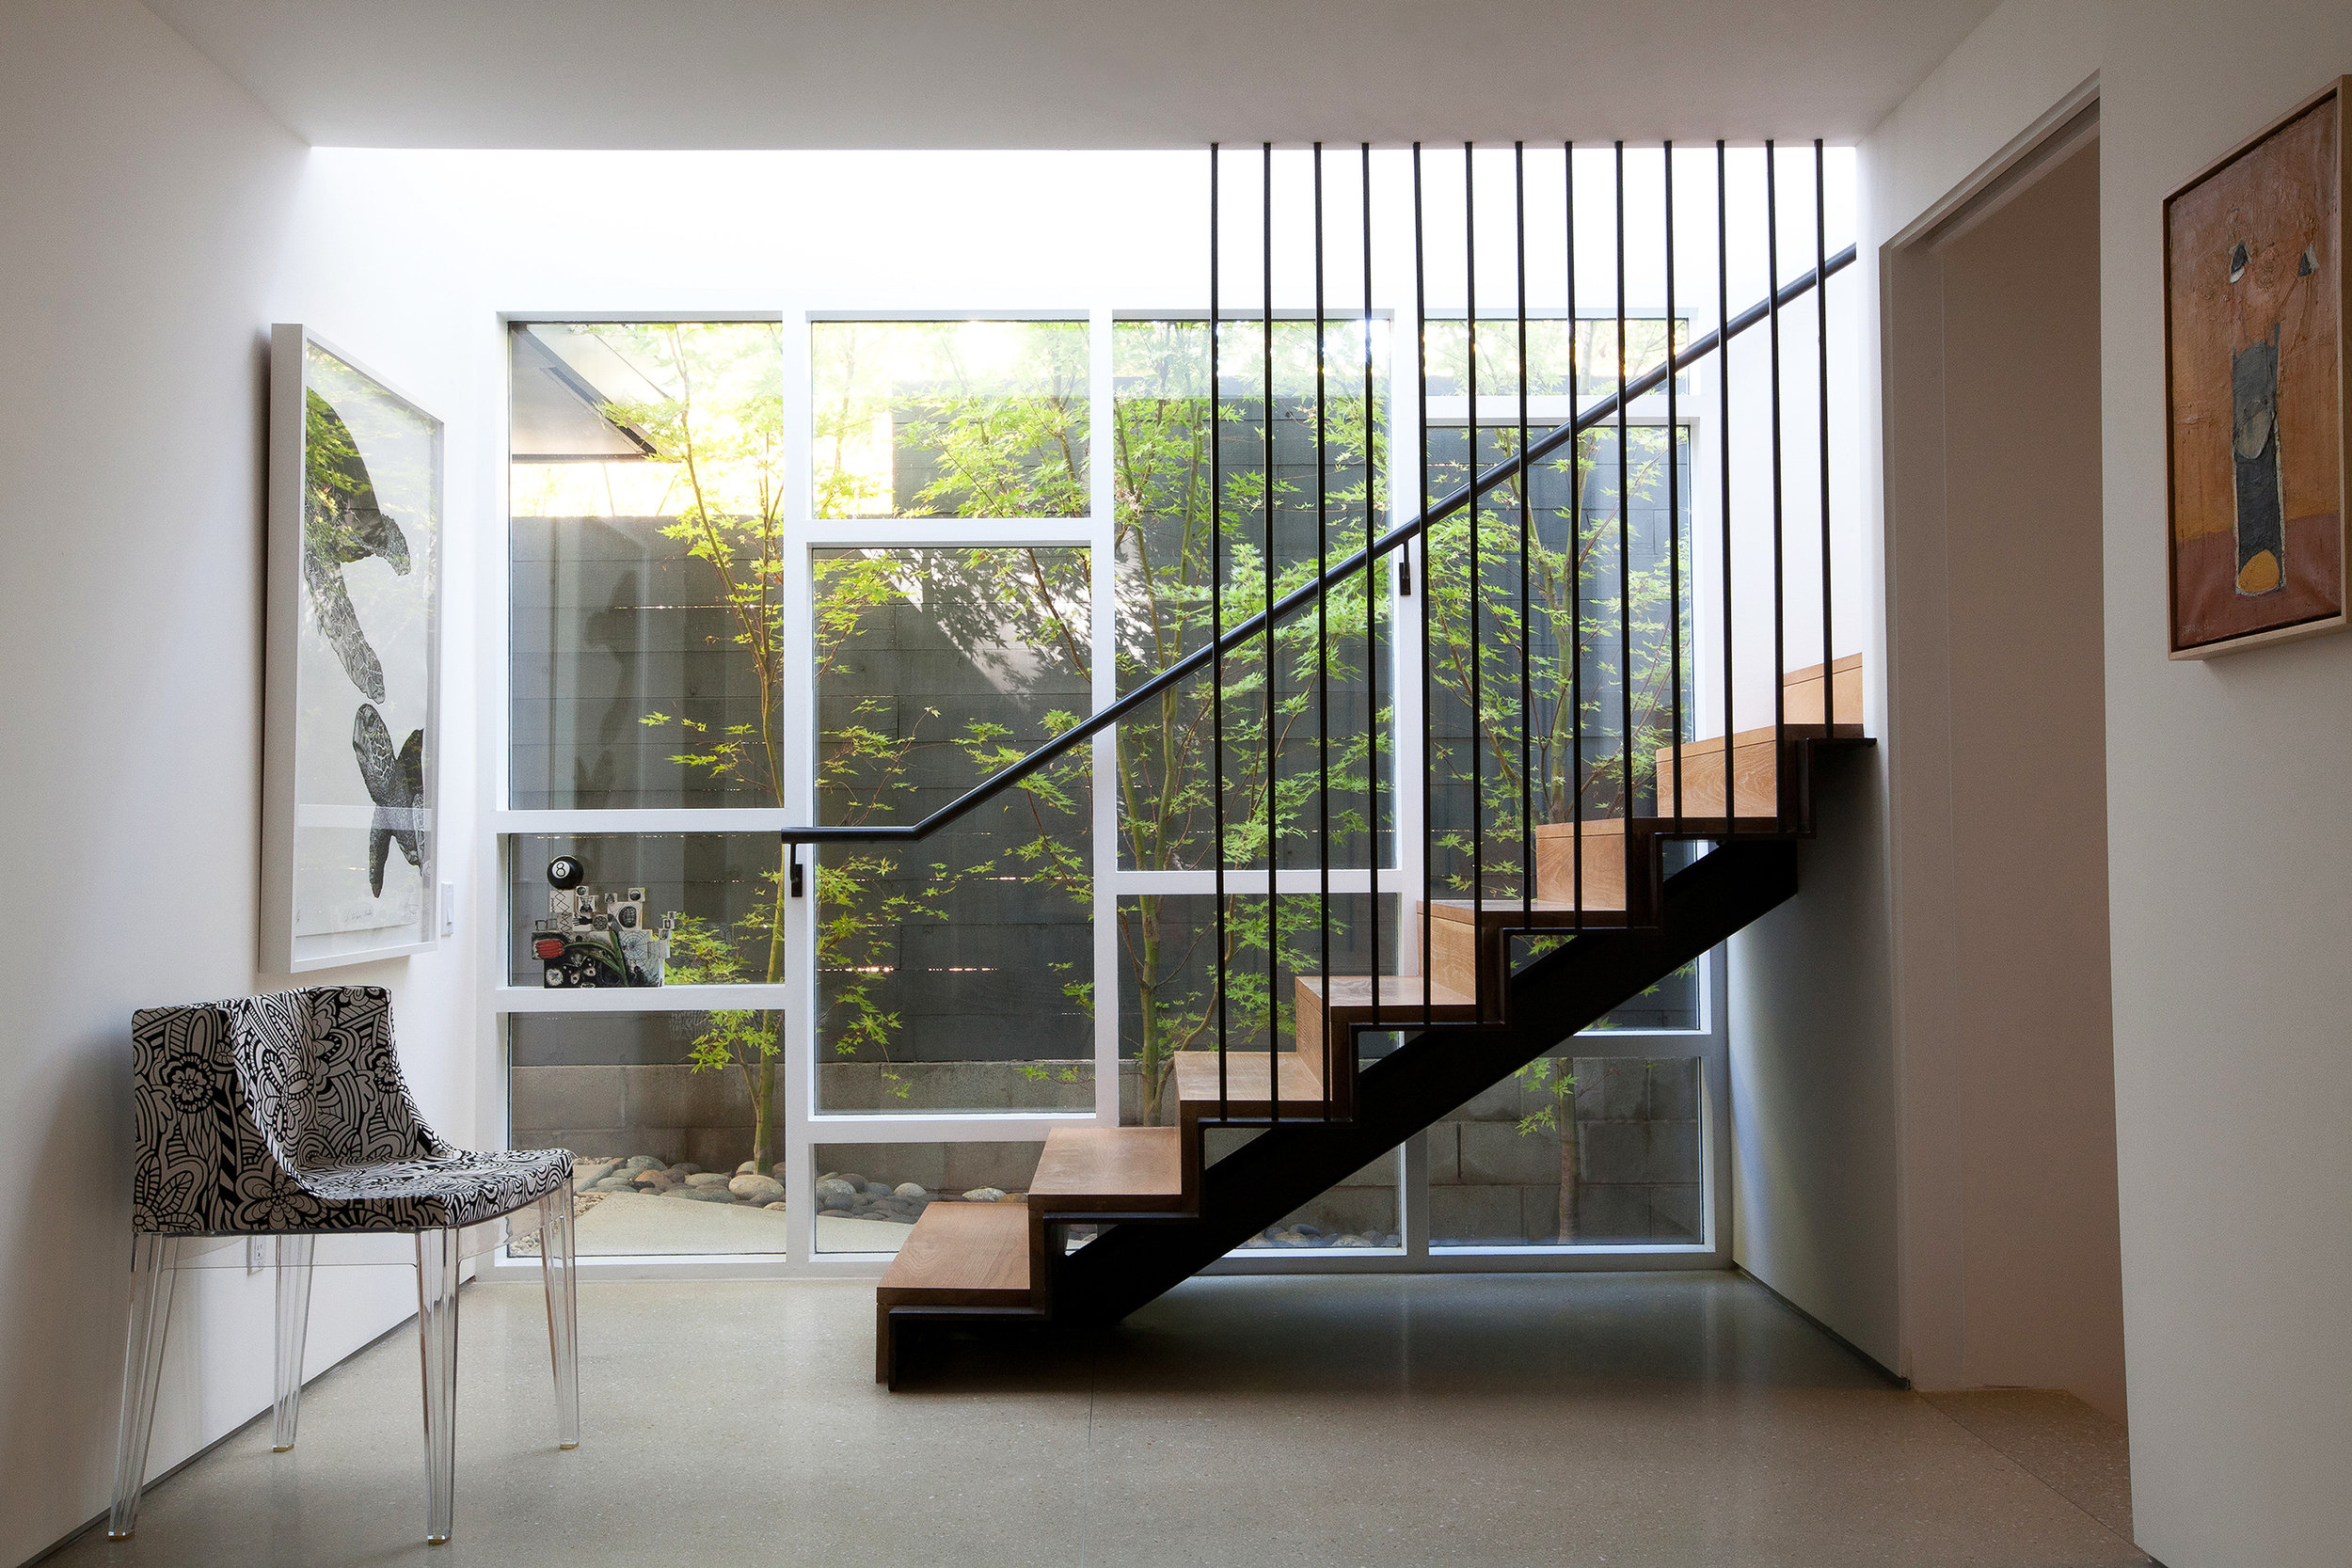 Brentwood_stairsRESIZE 2.jpg